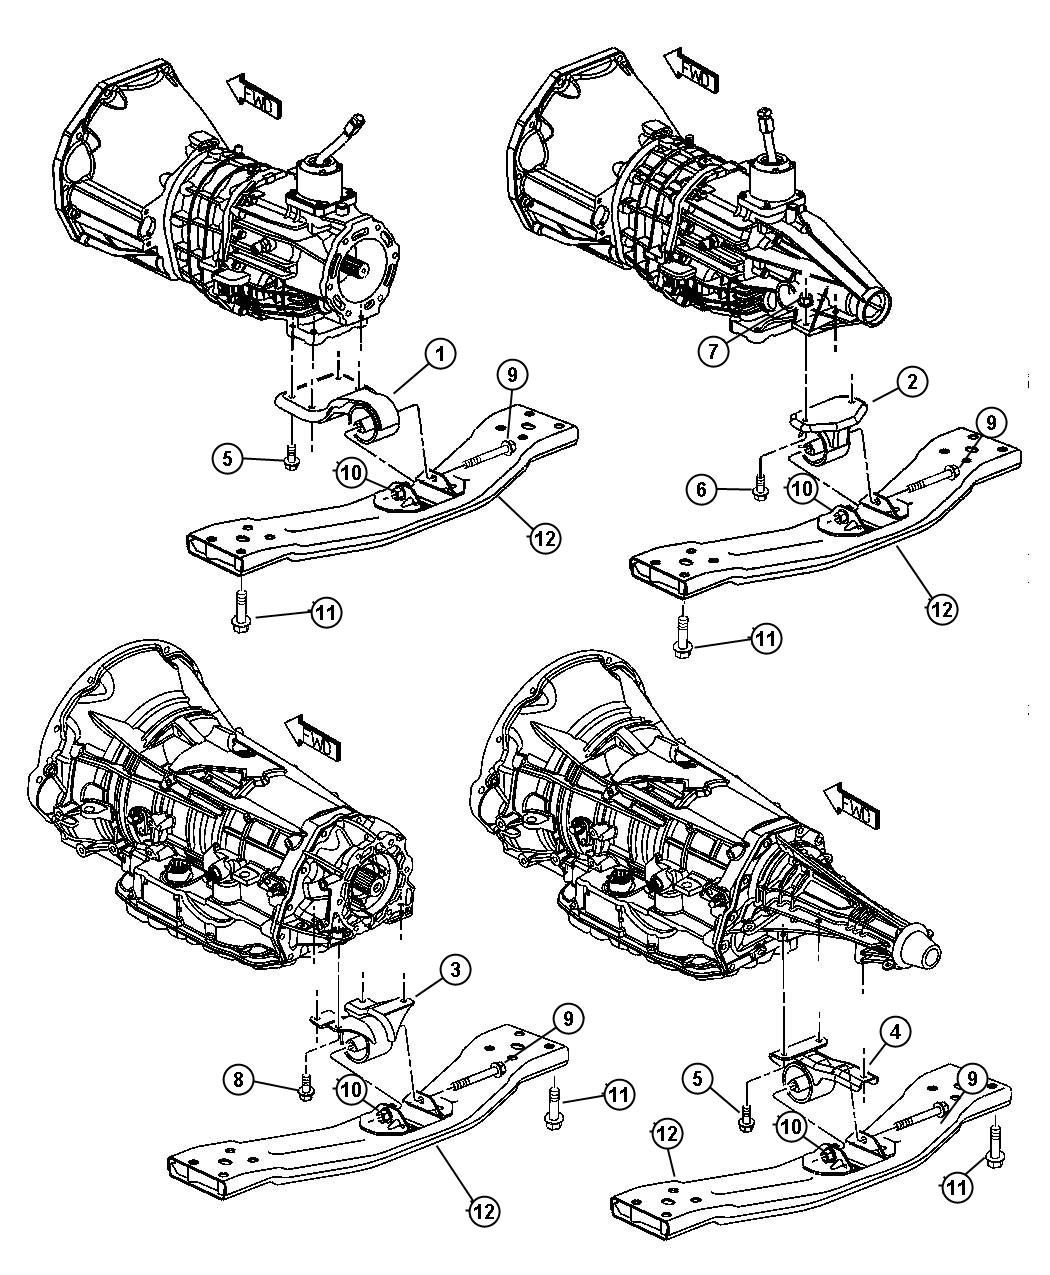 Chrysler Sebring Used For Bracket And Insulator Transmission Support Transmission